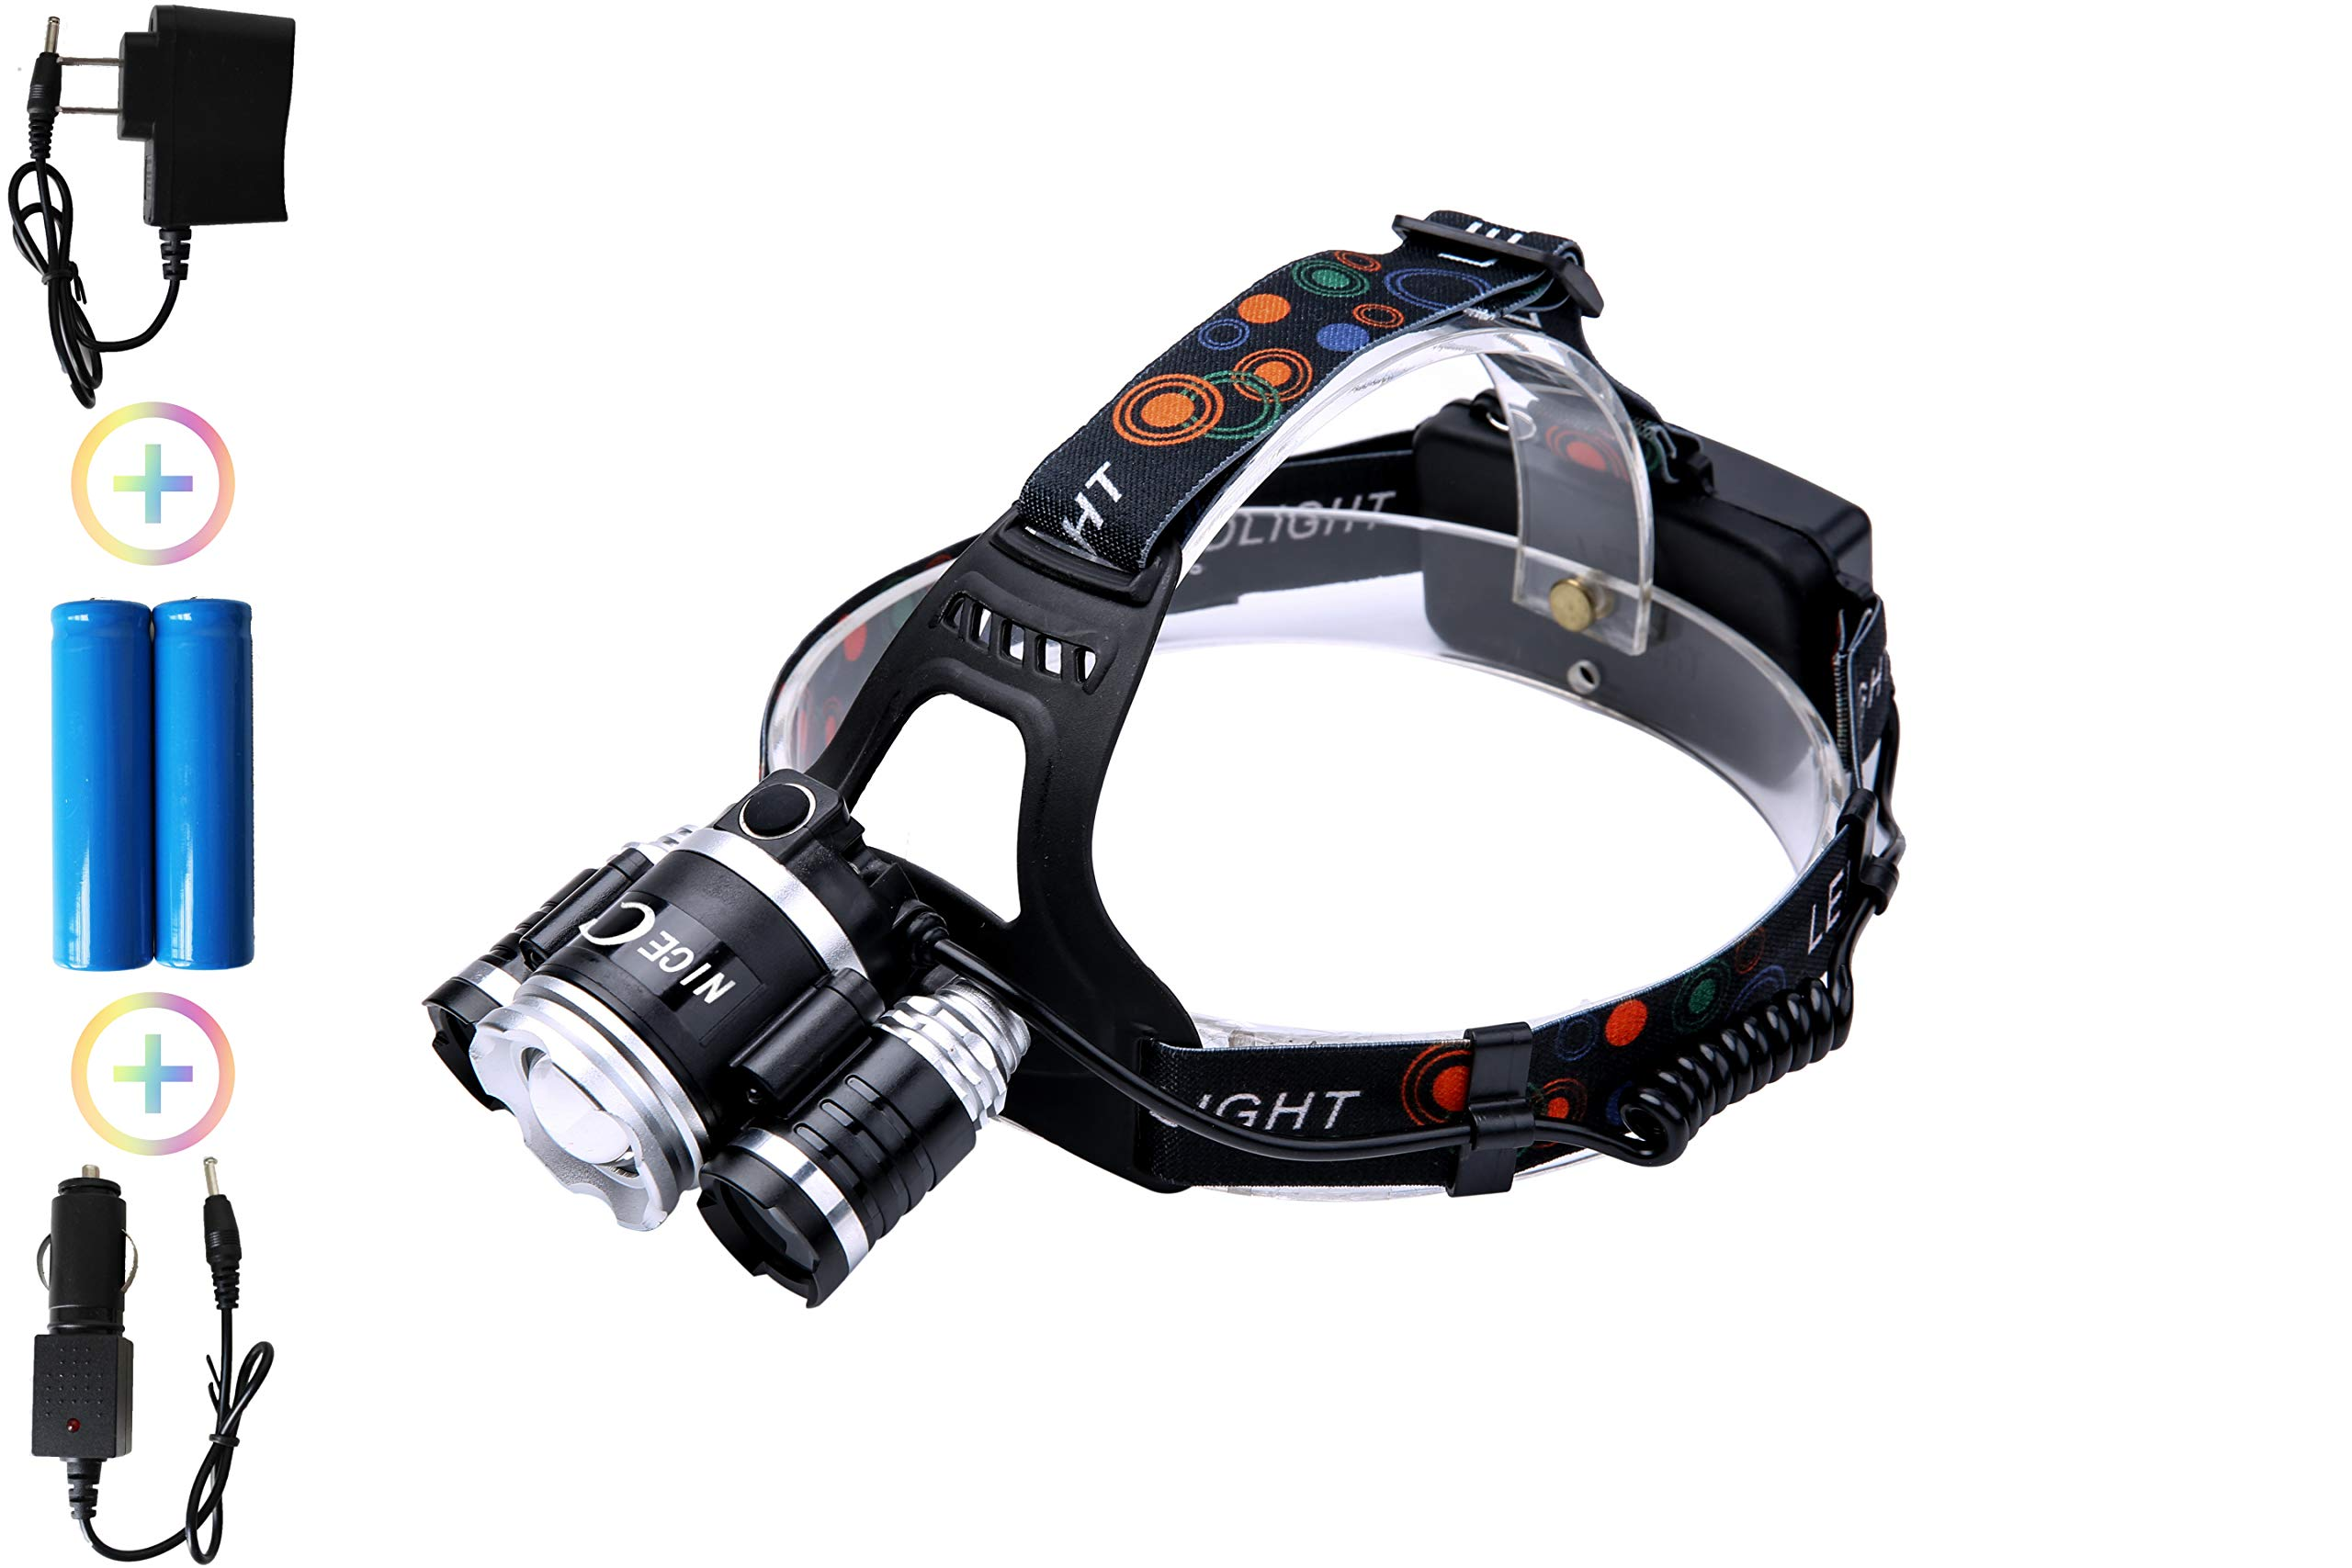 NiceC Induction Rechargeable Headlamp Waterproof LED 6000 Lumen flashlight headlight for camping, work, night riding, running, hiking